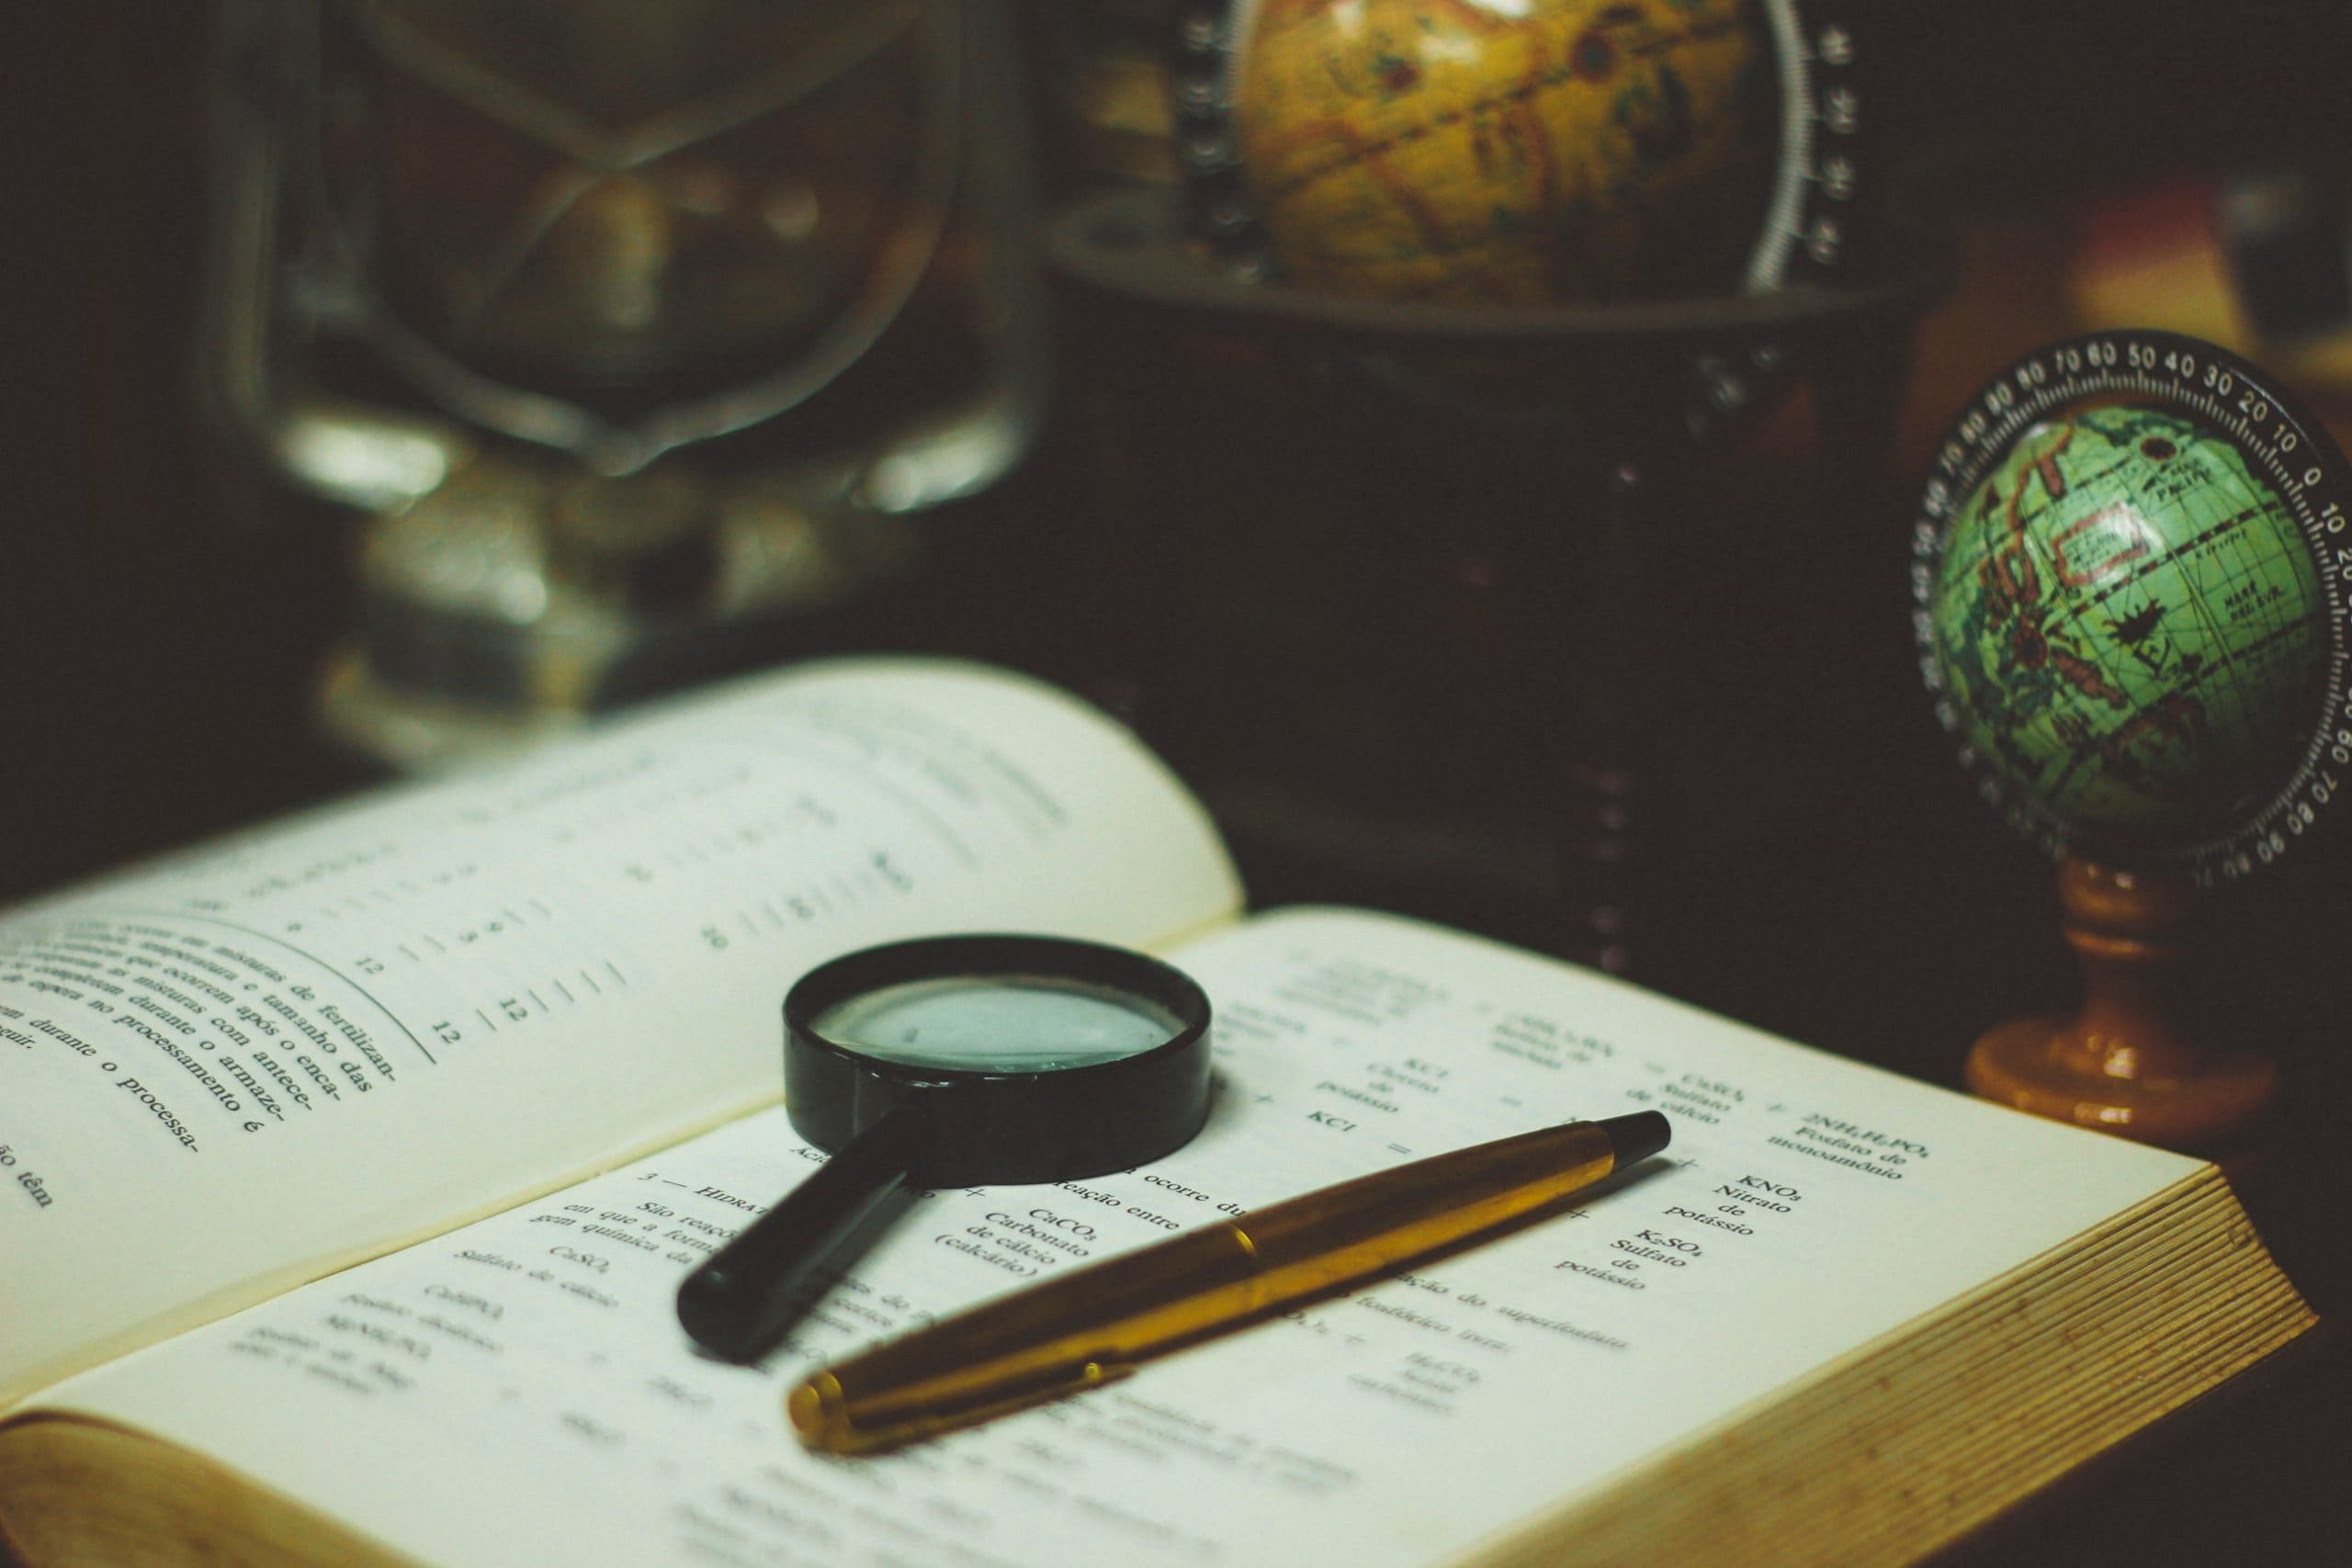 The usefulness of useless knowledge - research